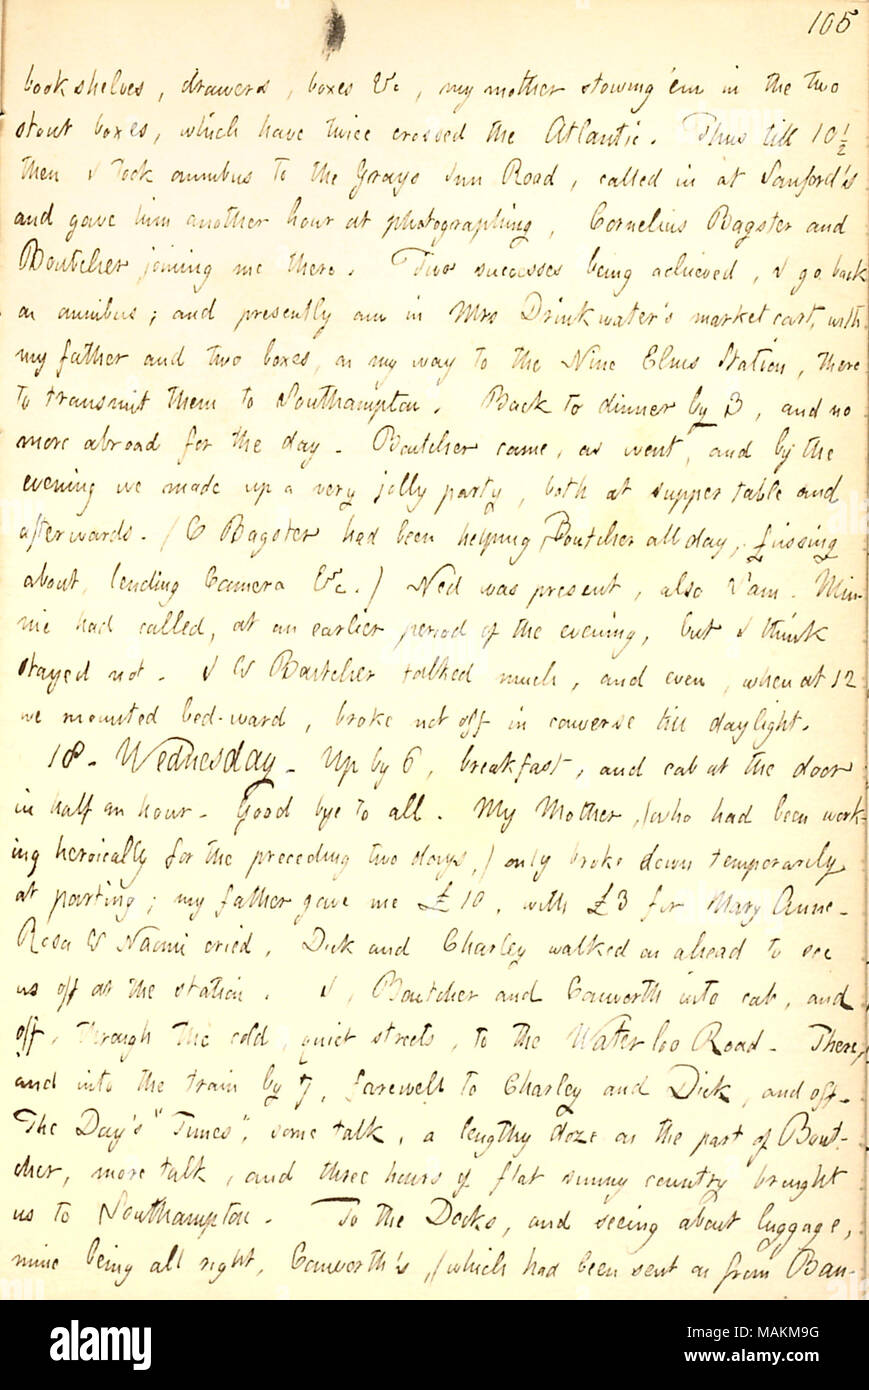 Describes the day of his departure from London to Southampton.  Transcription: bookshelves, drawers, boxes &c, my mother [Naomi Butler Gunn] stowing  ?em in the two stout boxes, which have twice crossed the Atlantic. Thus till 10 1/2 then I took omnibus to the Grays Inn Road, called in at Sanford ?s and gave him another hour at photographing, Cornelius Bagster and [William] Boutcher joining me there. Two successes being achieved, I go back on omnibus; and presently am in Mrs Drinkwater ?s market cart, with my father [Samuel Gunn, Sr.] and two boxes, on my way to the Nine Elms Station, there to - Stock Image